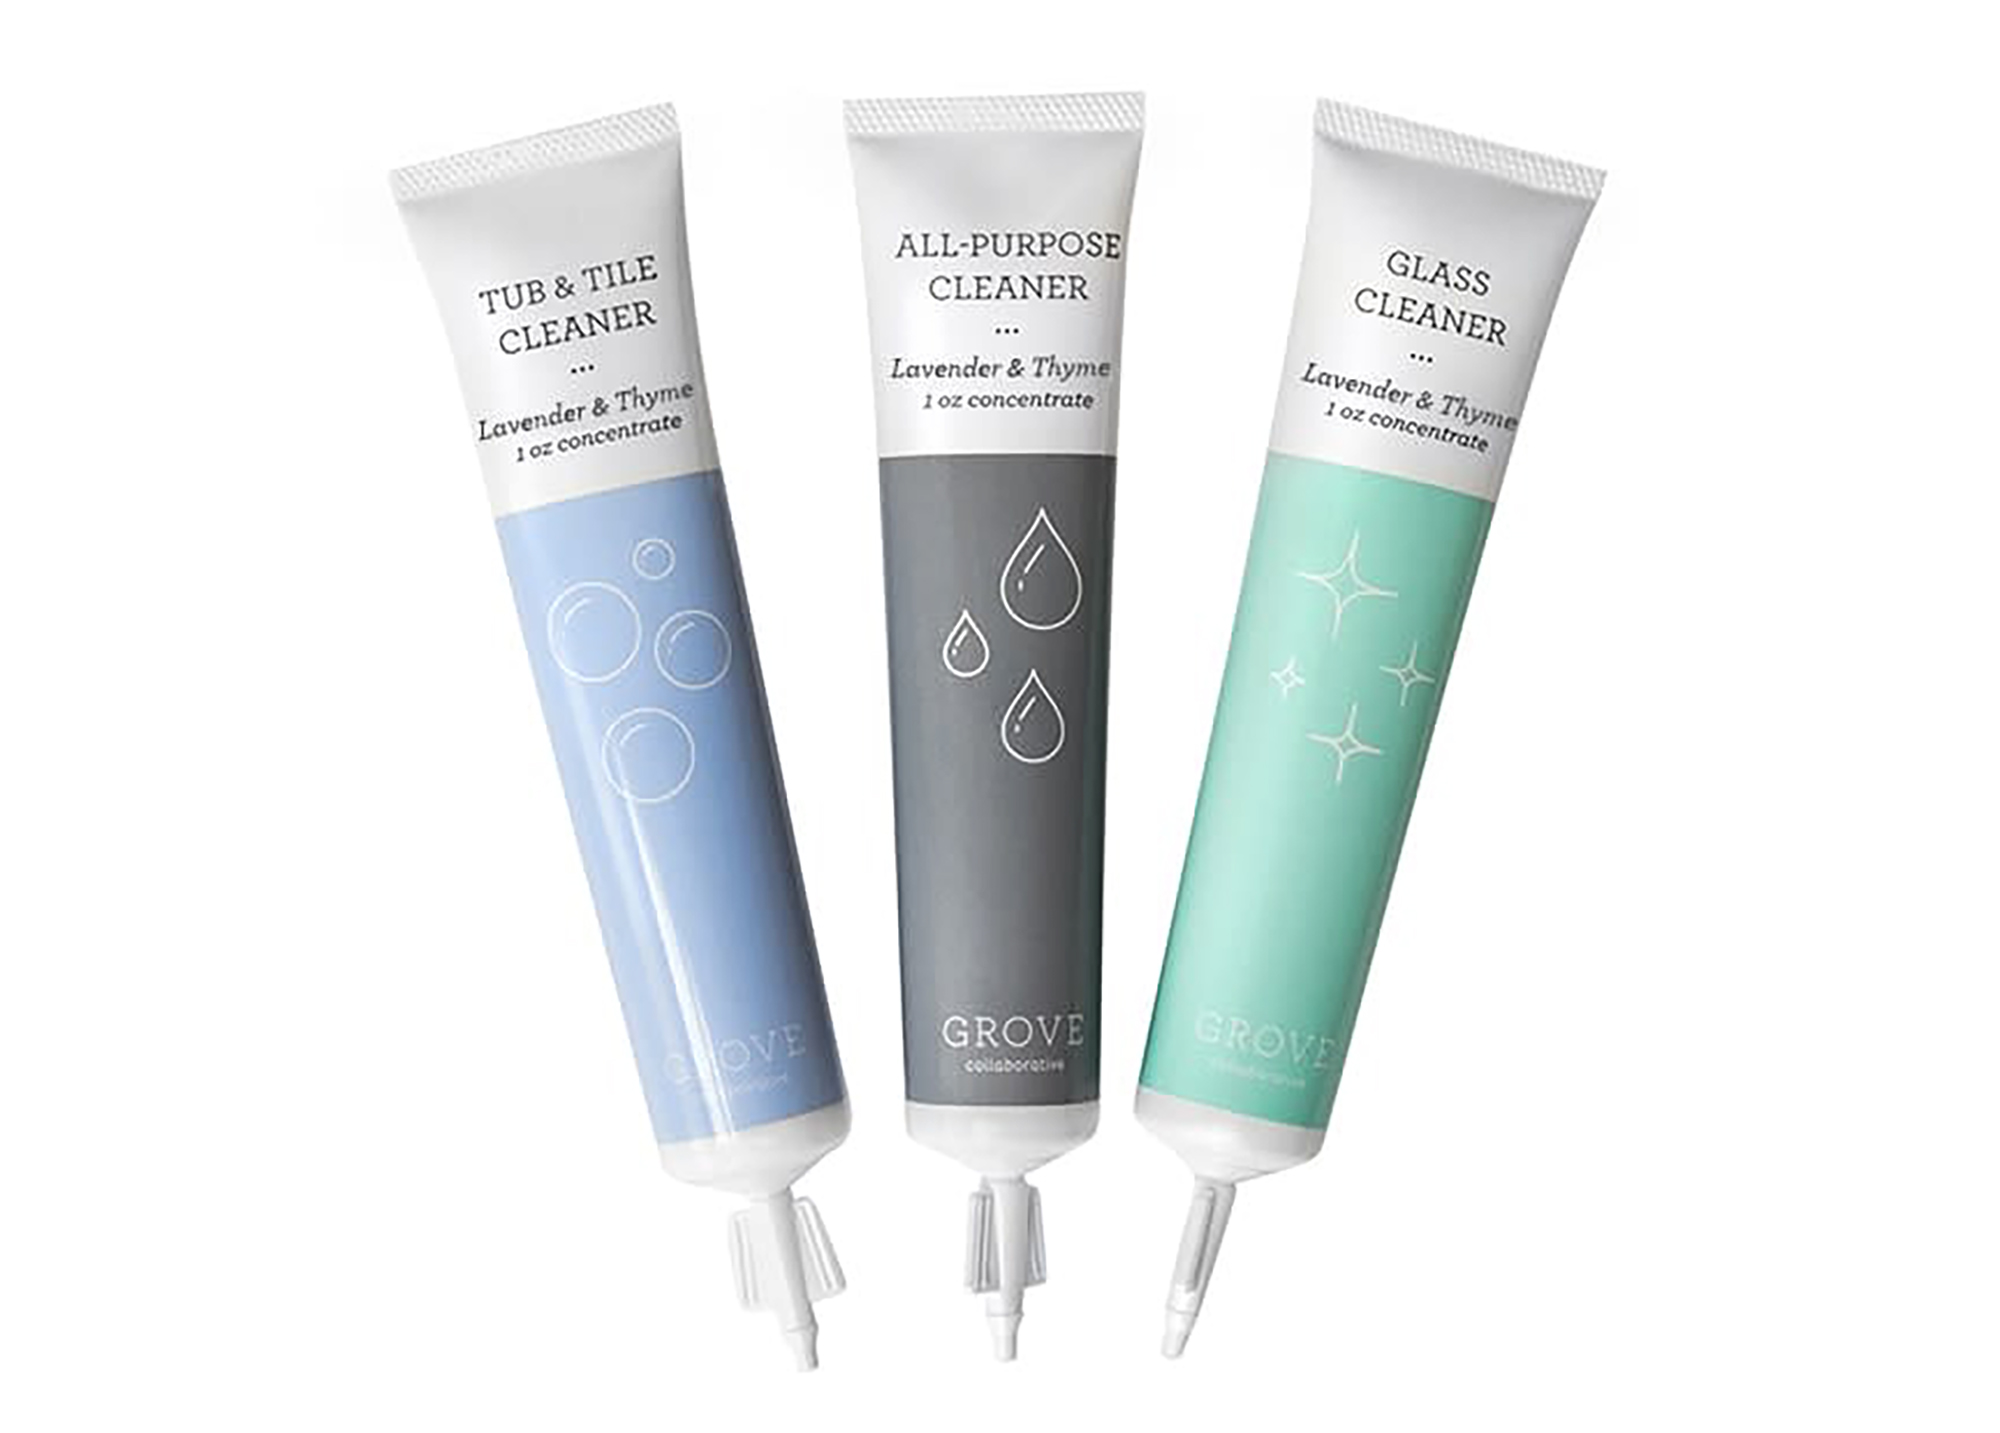 Grove Collaborative Cleaning Concentrates